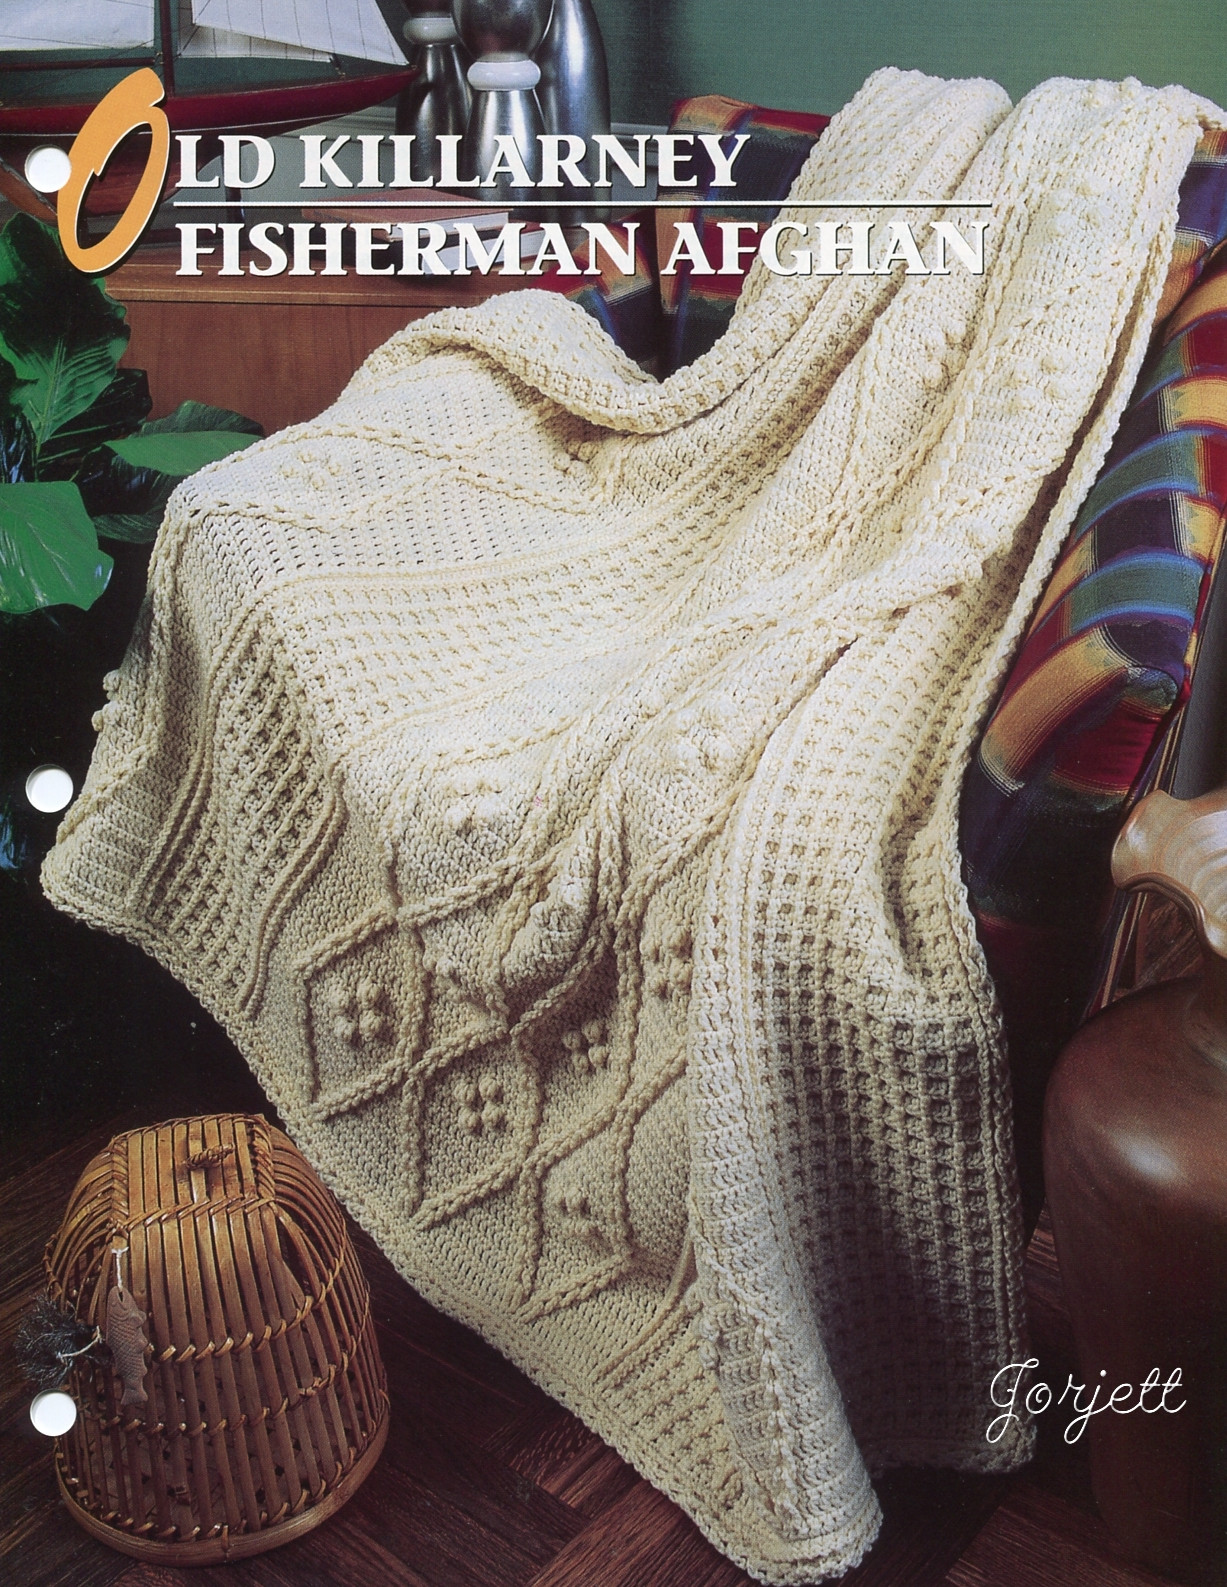 Old Killarney Fisherman Afghan, Annies crochet pattern eBay